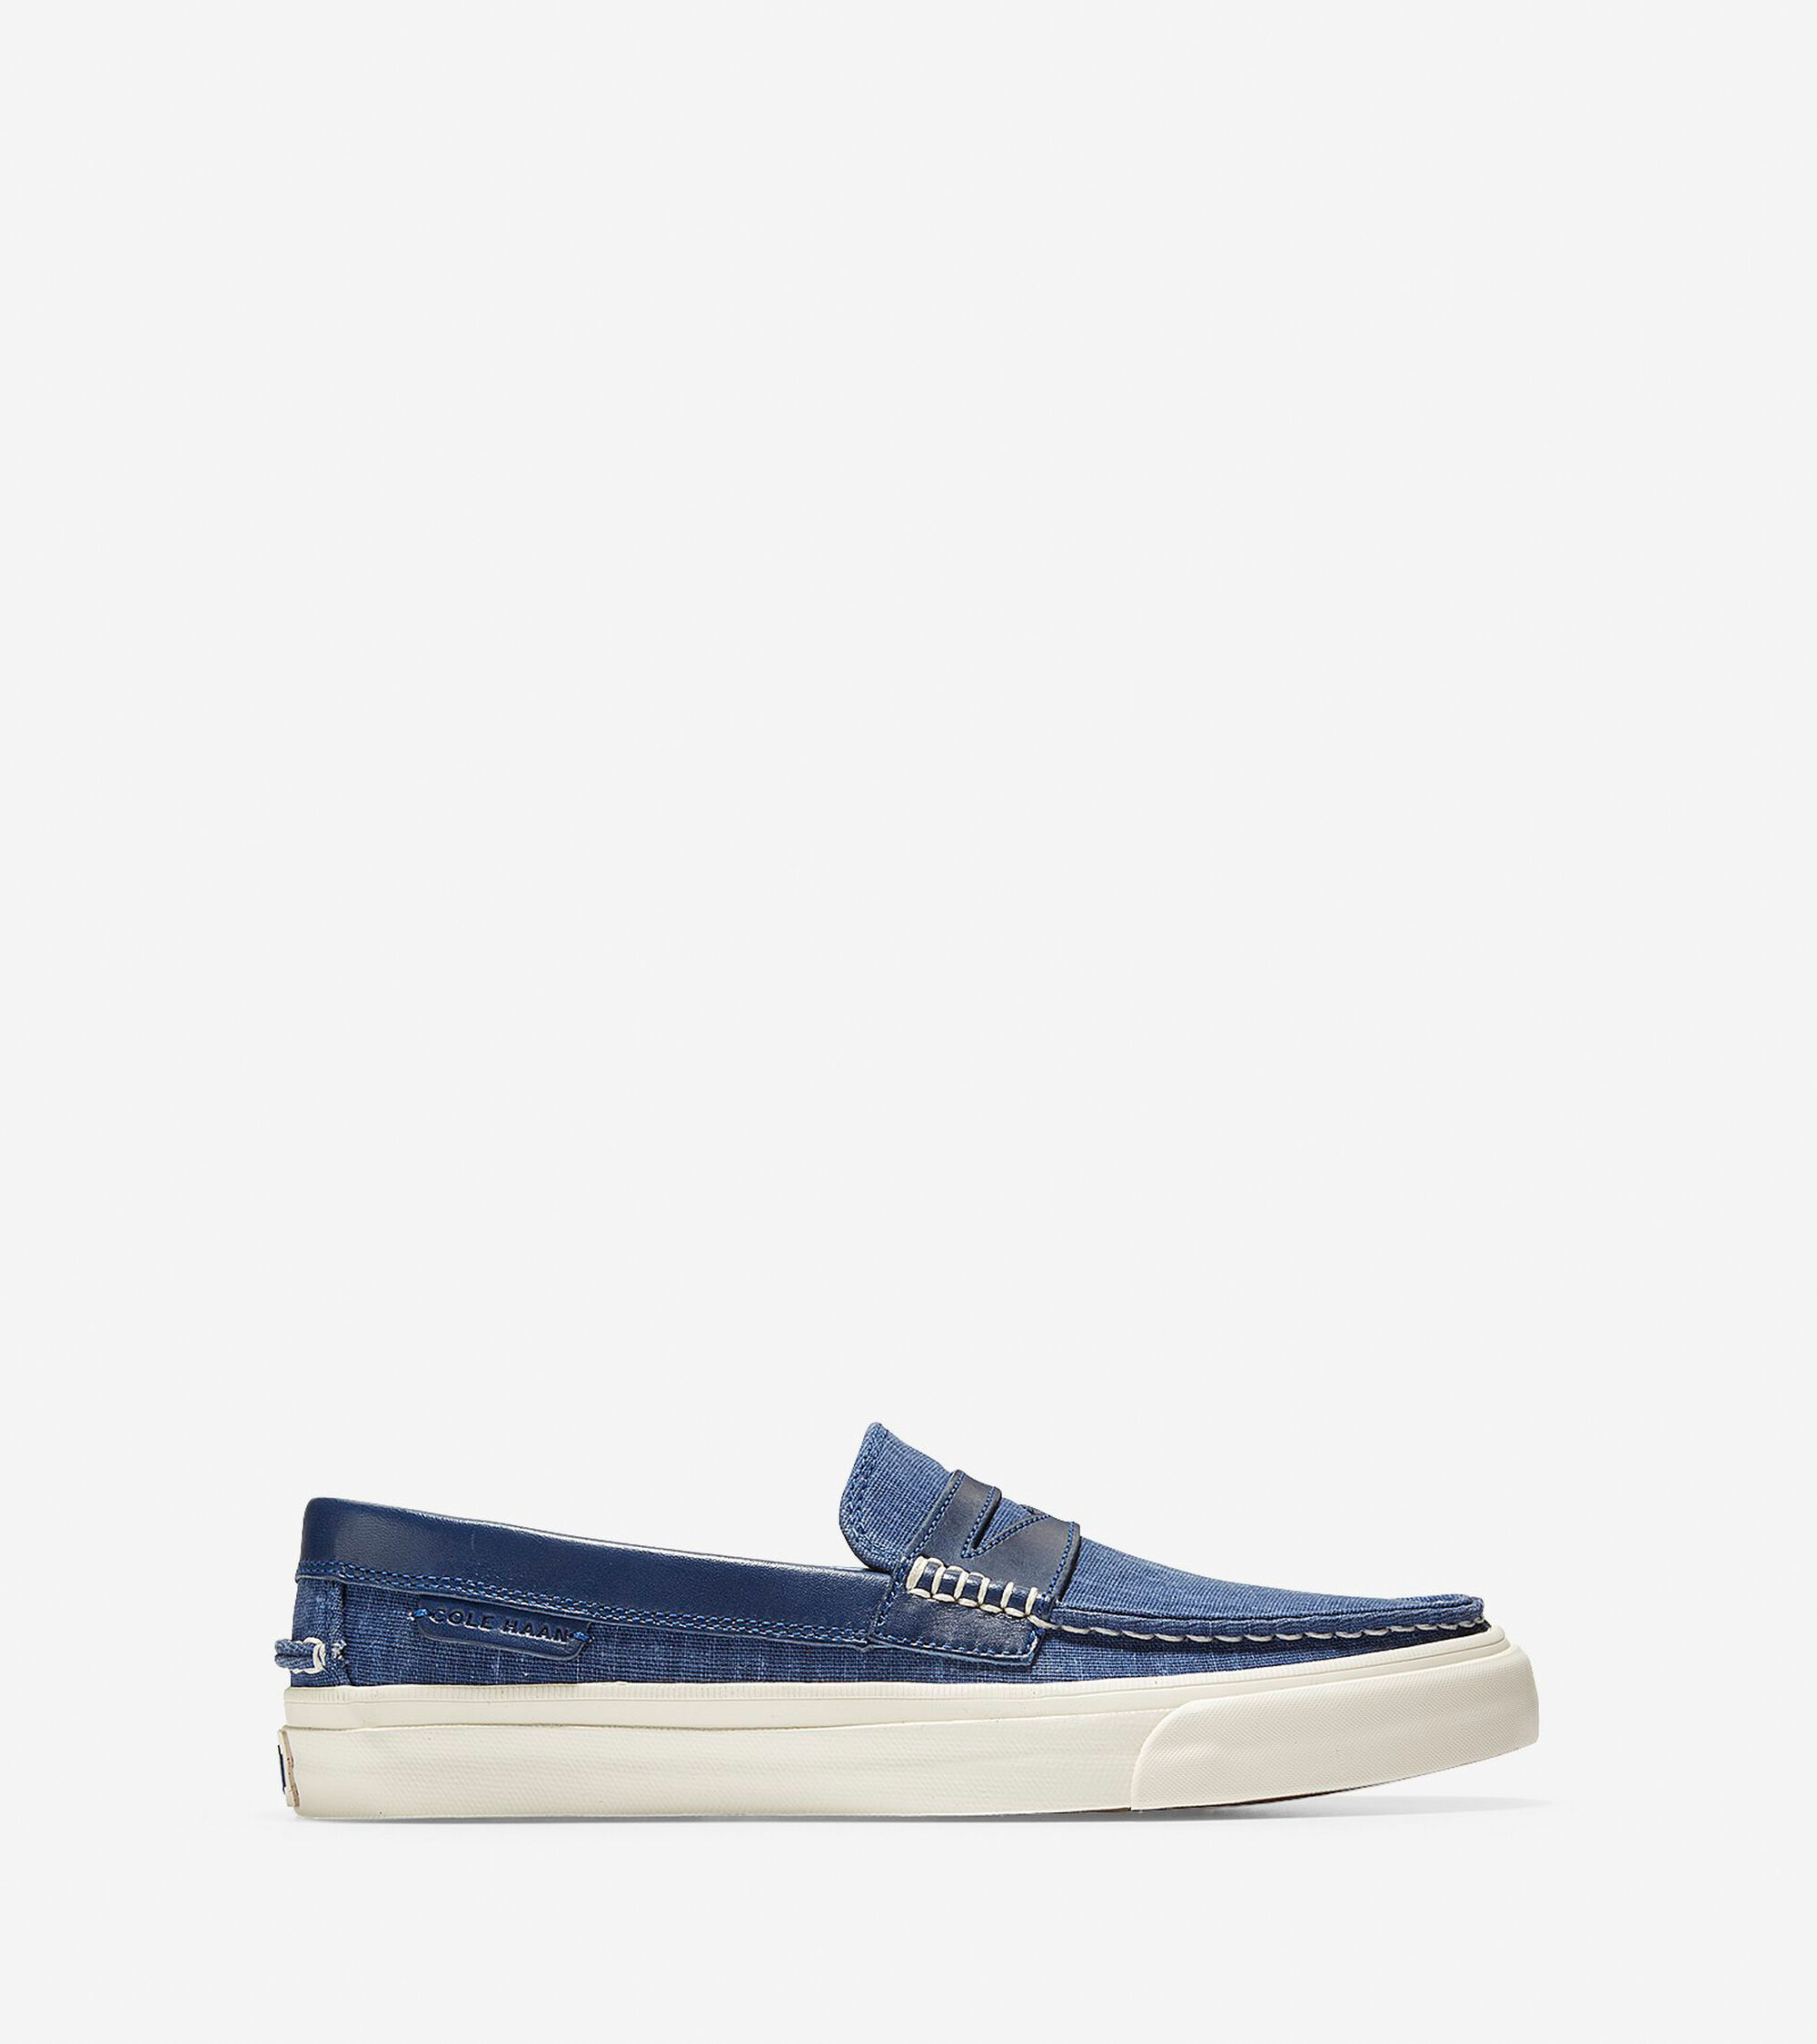 faf7c5aa032 Men s Pinch Weekender LX Loafers in Navy Peony